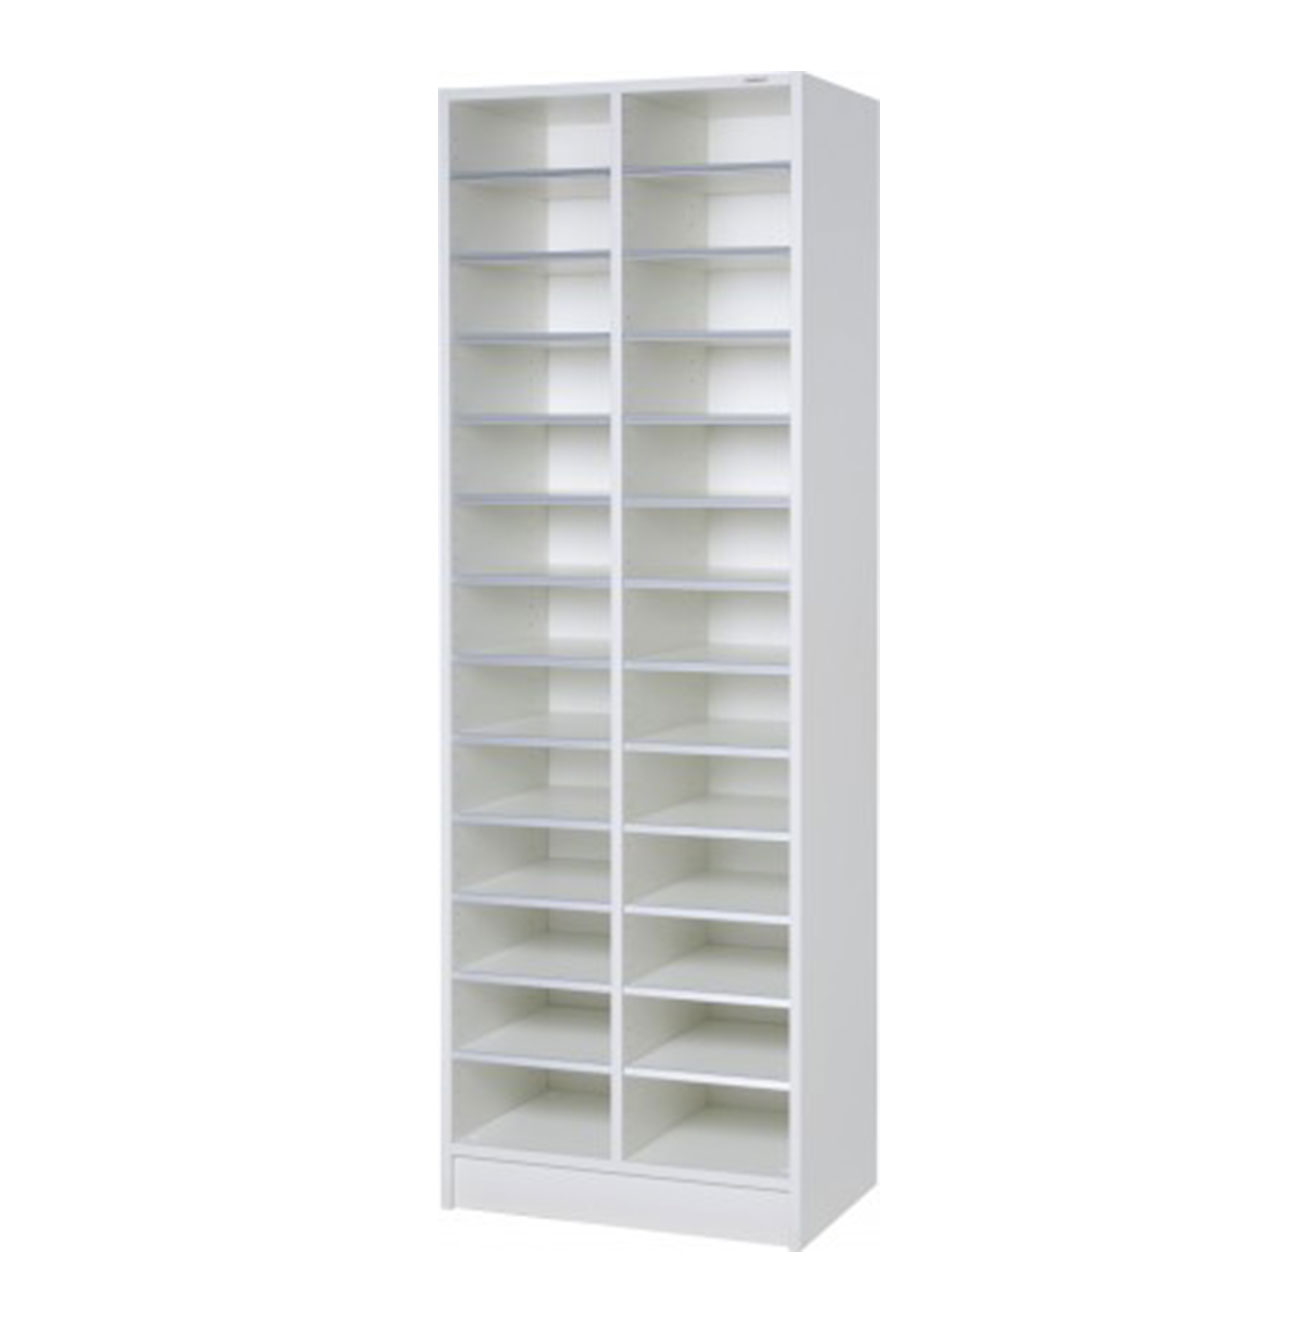 Double Pigeon Hole Cabinet - White